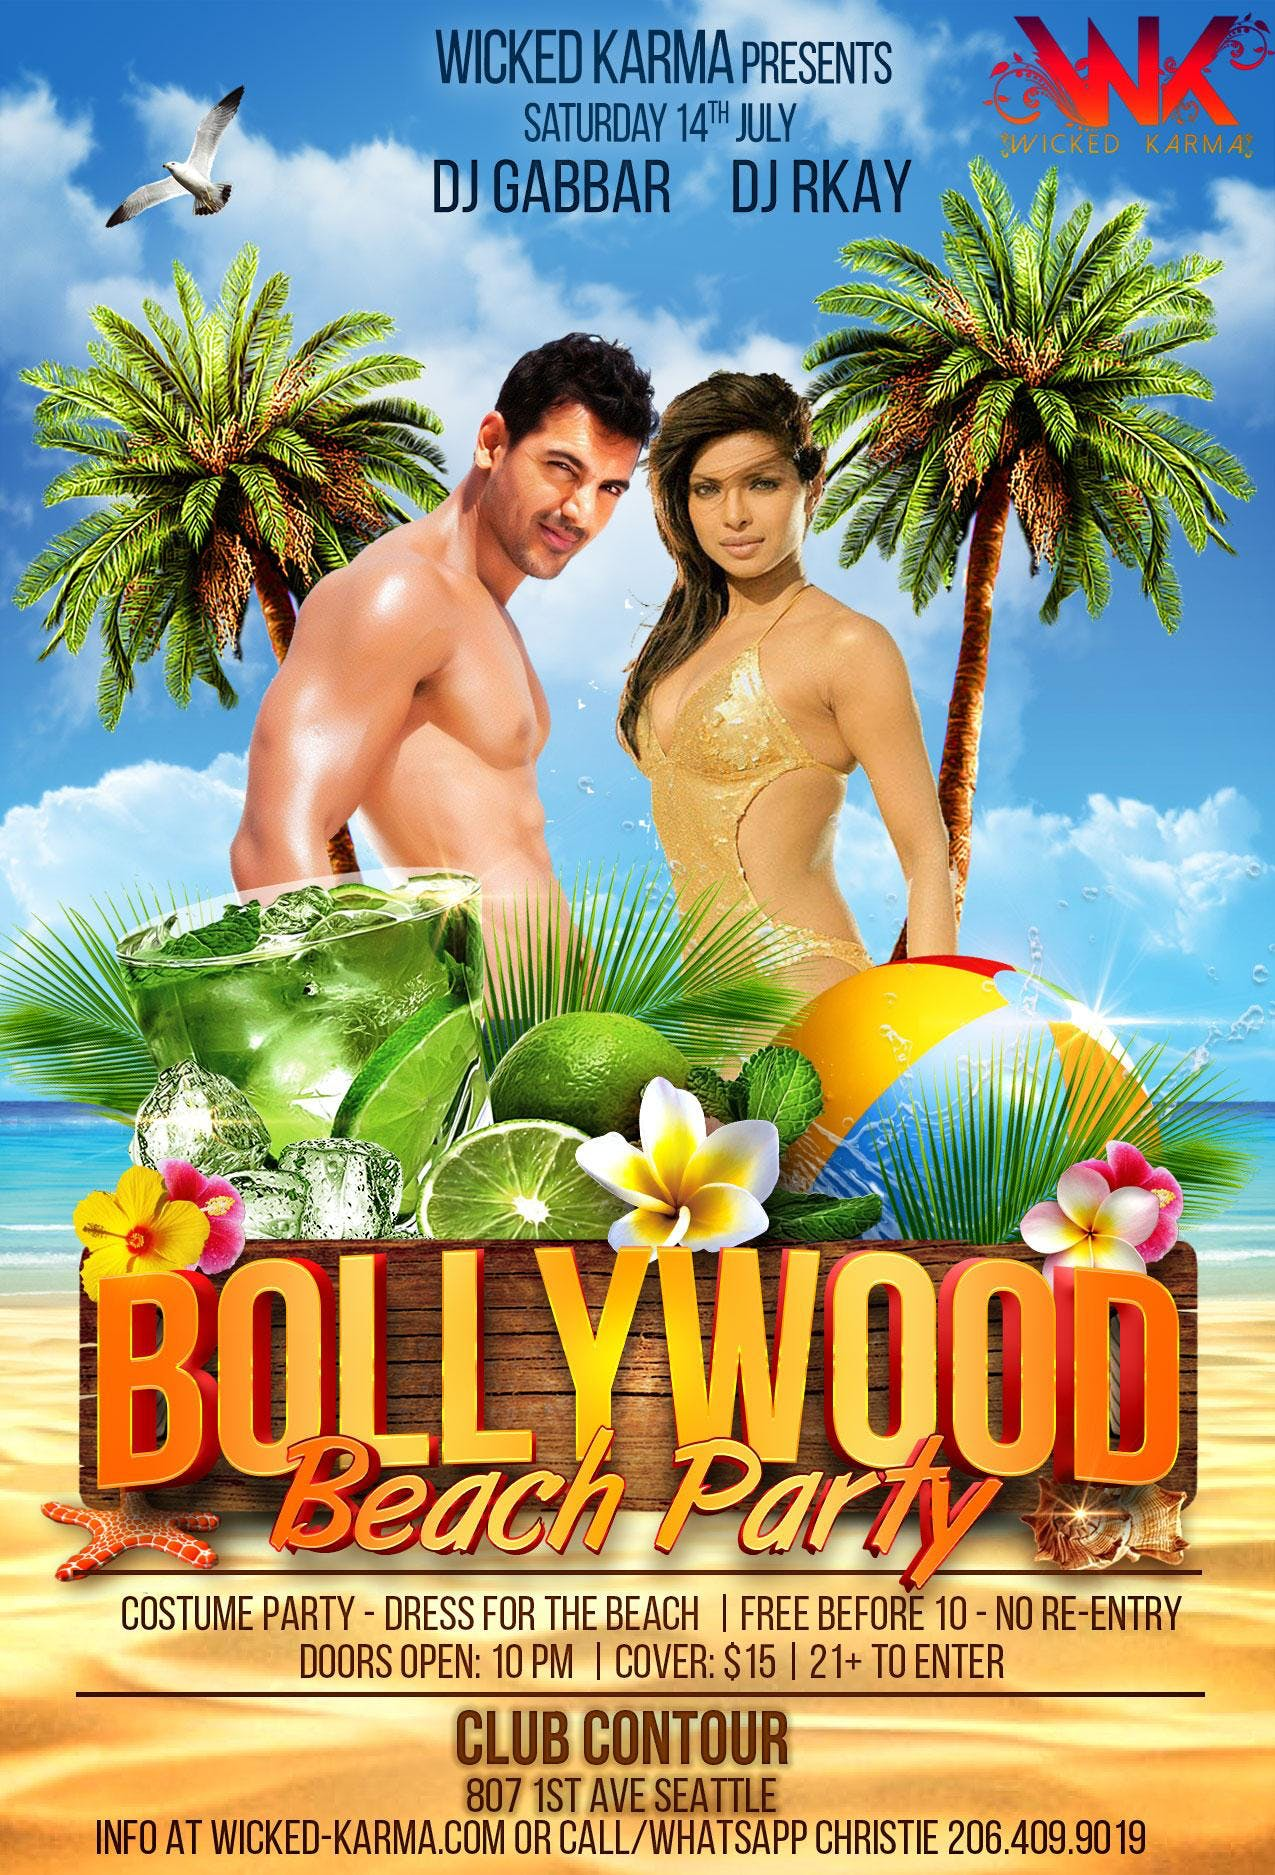 WK Presents Bollywood Beach Dance Party